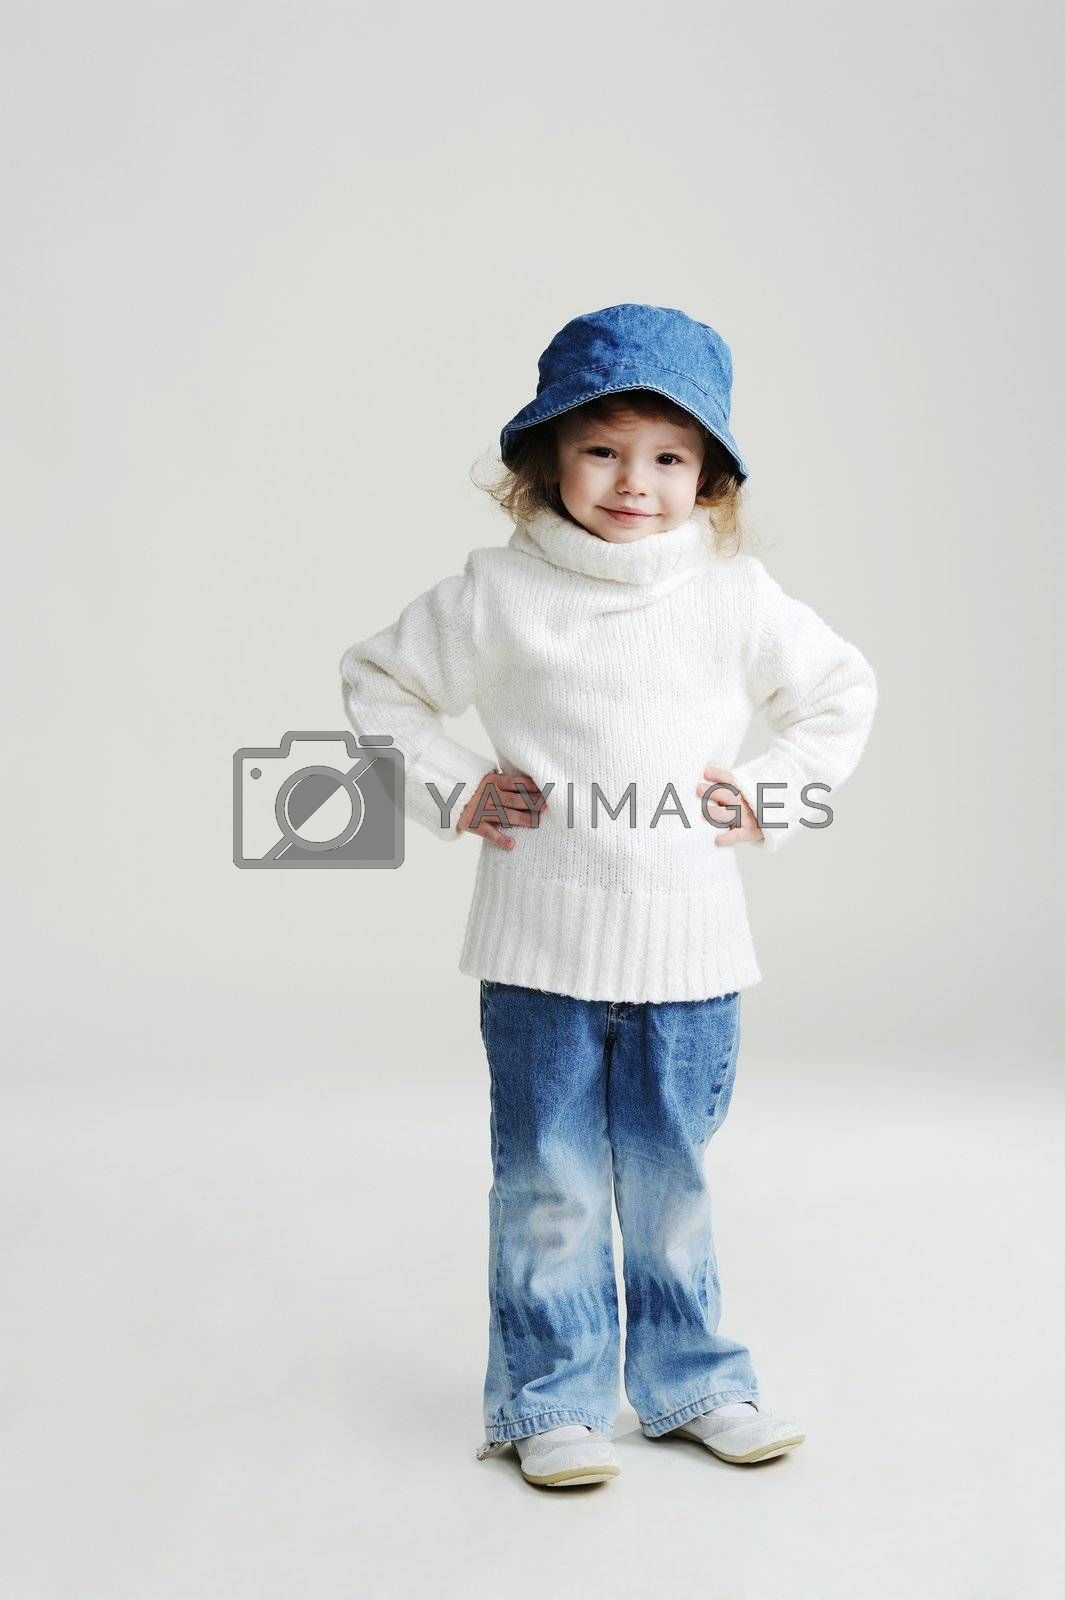 An image of a little girl in a blue hat and white jumper